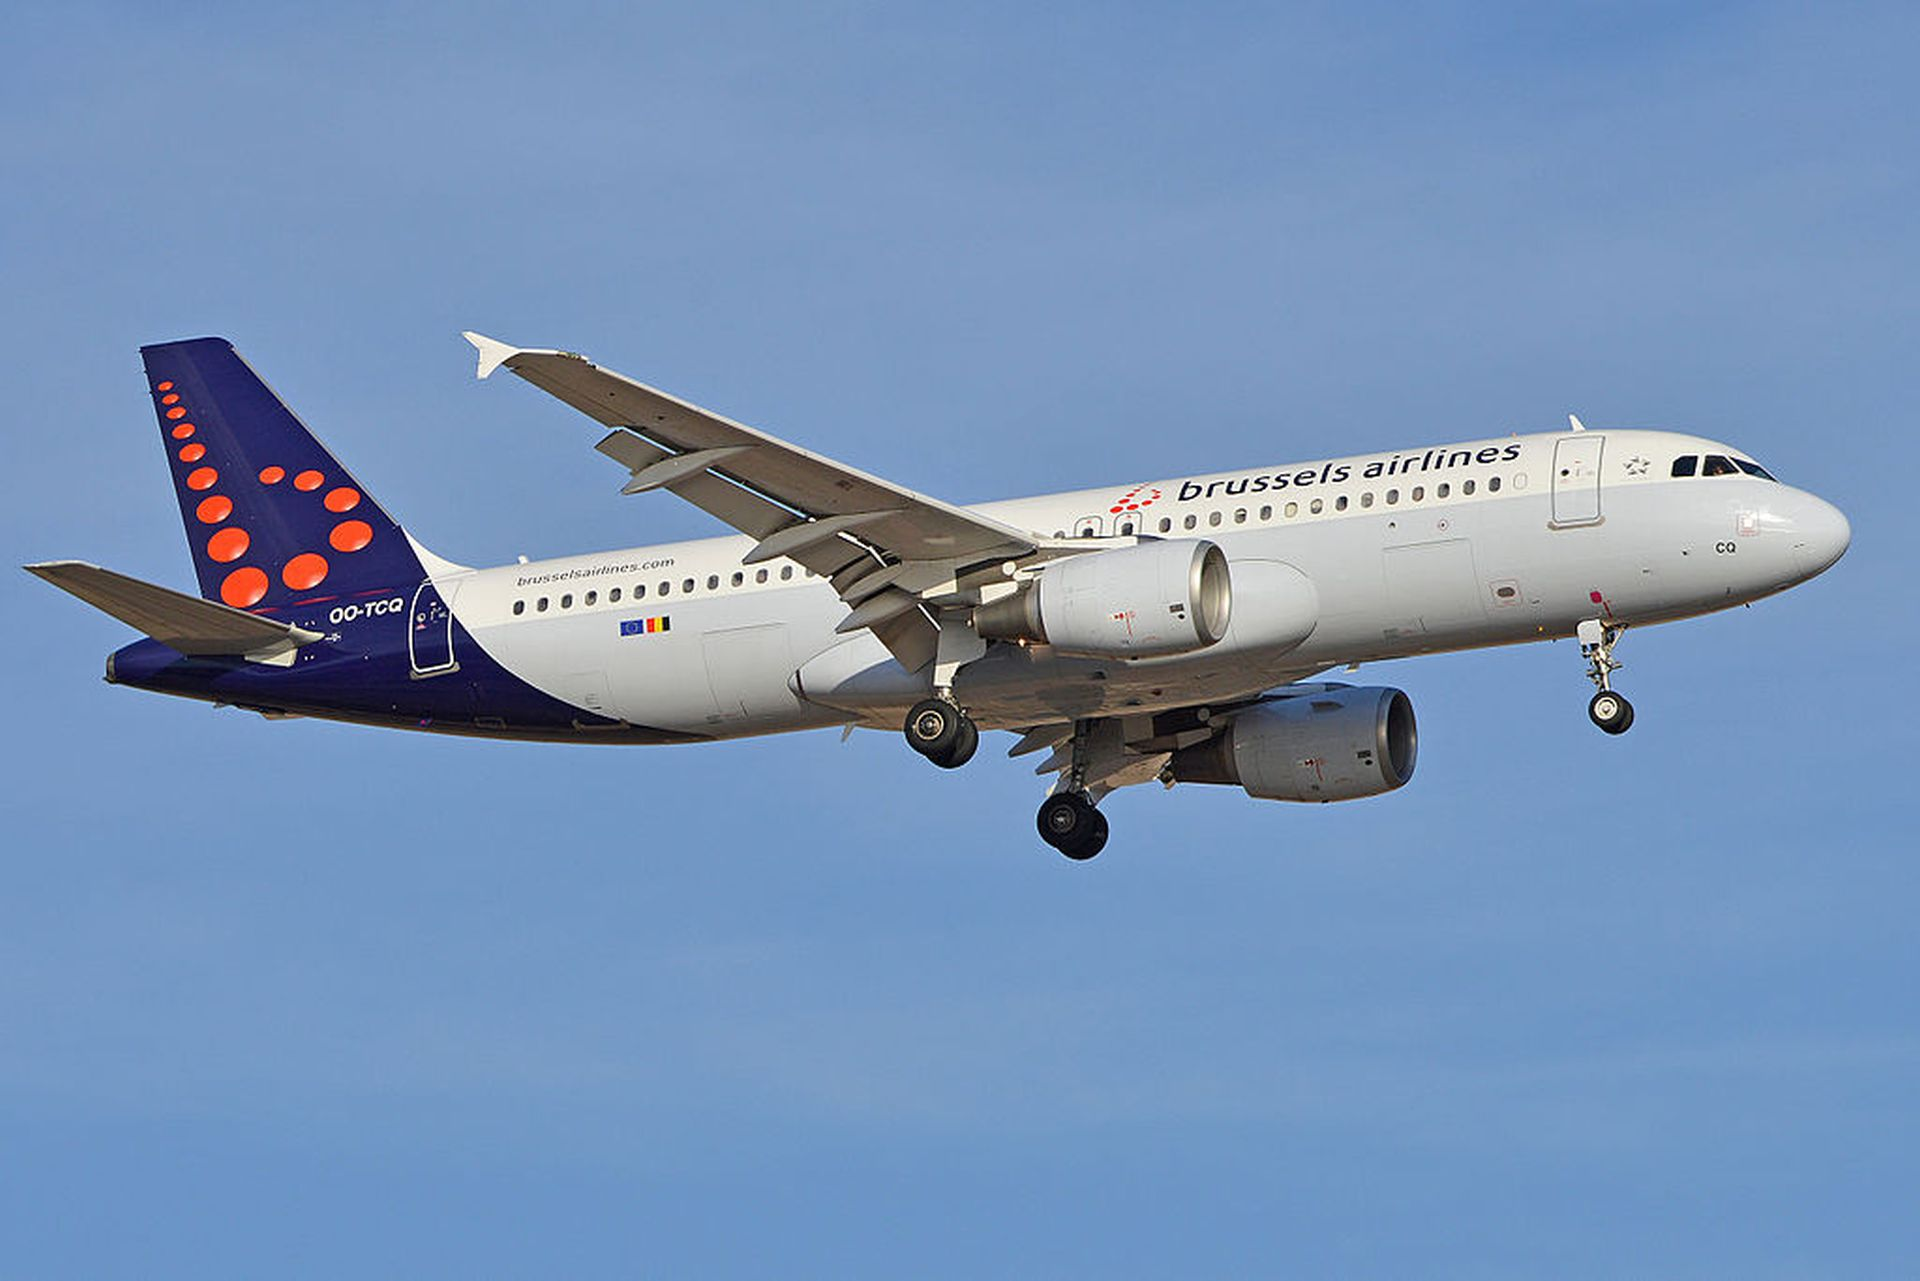 Airbus A320 společnost Brussels Airlines. Foto: Alan Wilson from Stilton, Peterborough, Cambs, UK [CC BY-SA 2.0 (https://creativecommons.org/licenses/by-sa/2.0)]=